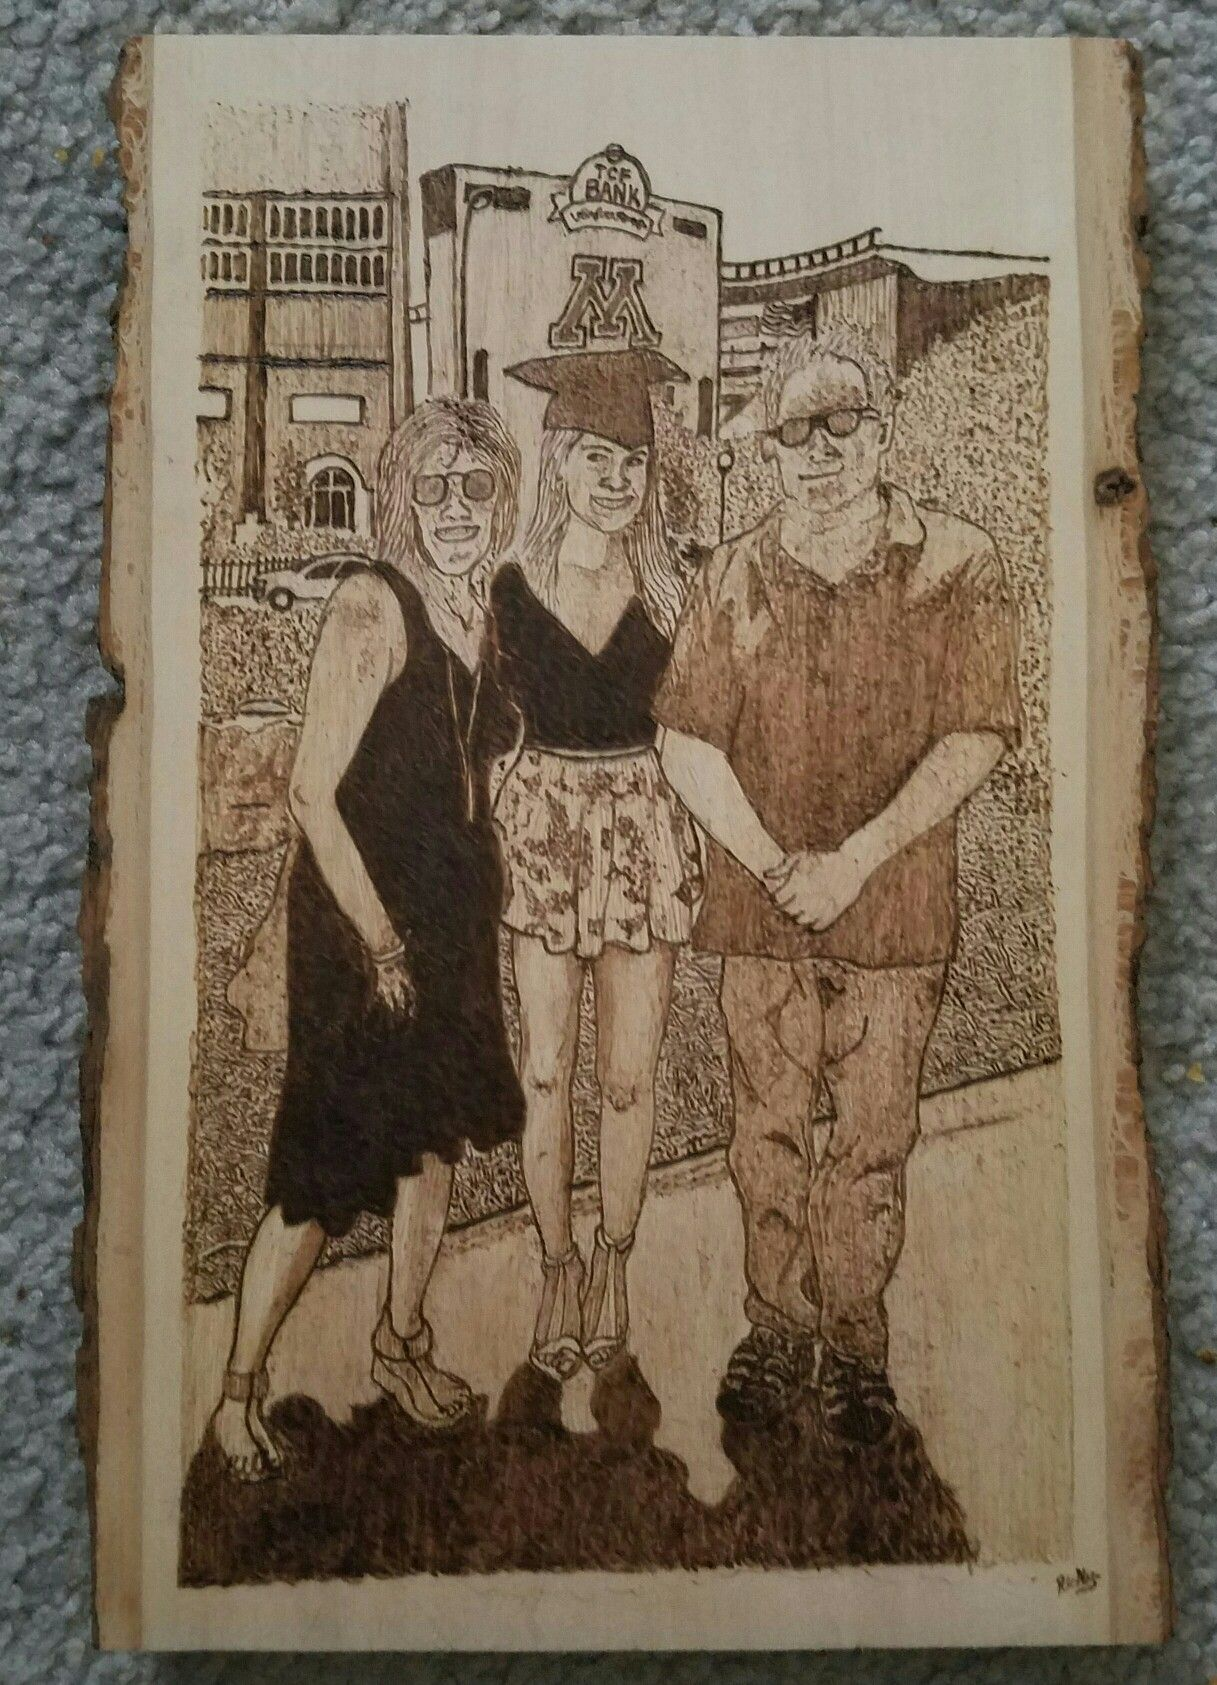 Wood burning I did for a very special friend of mine as a Christmas Present!